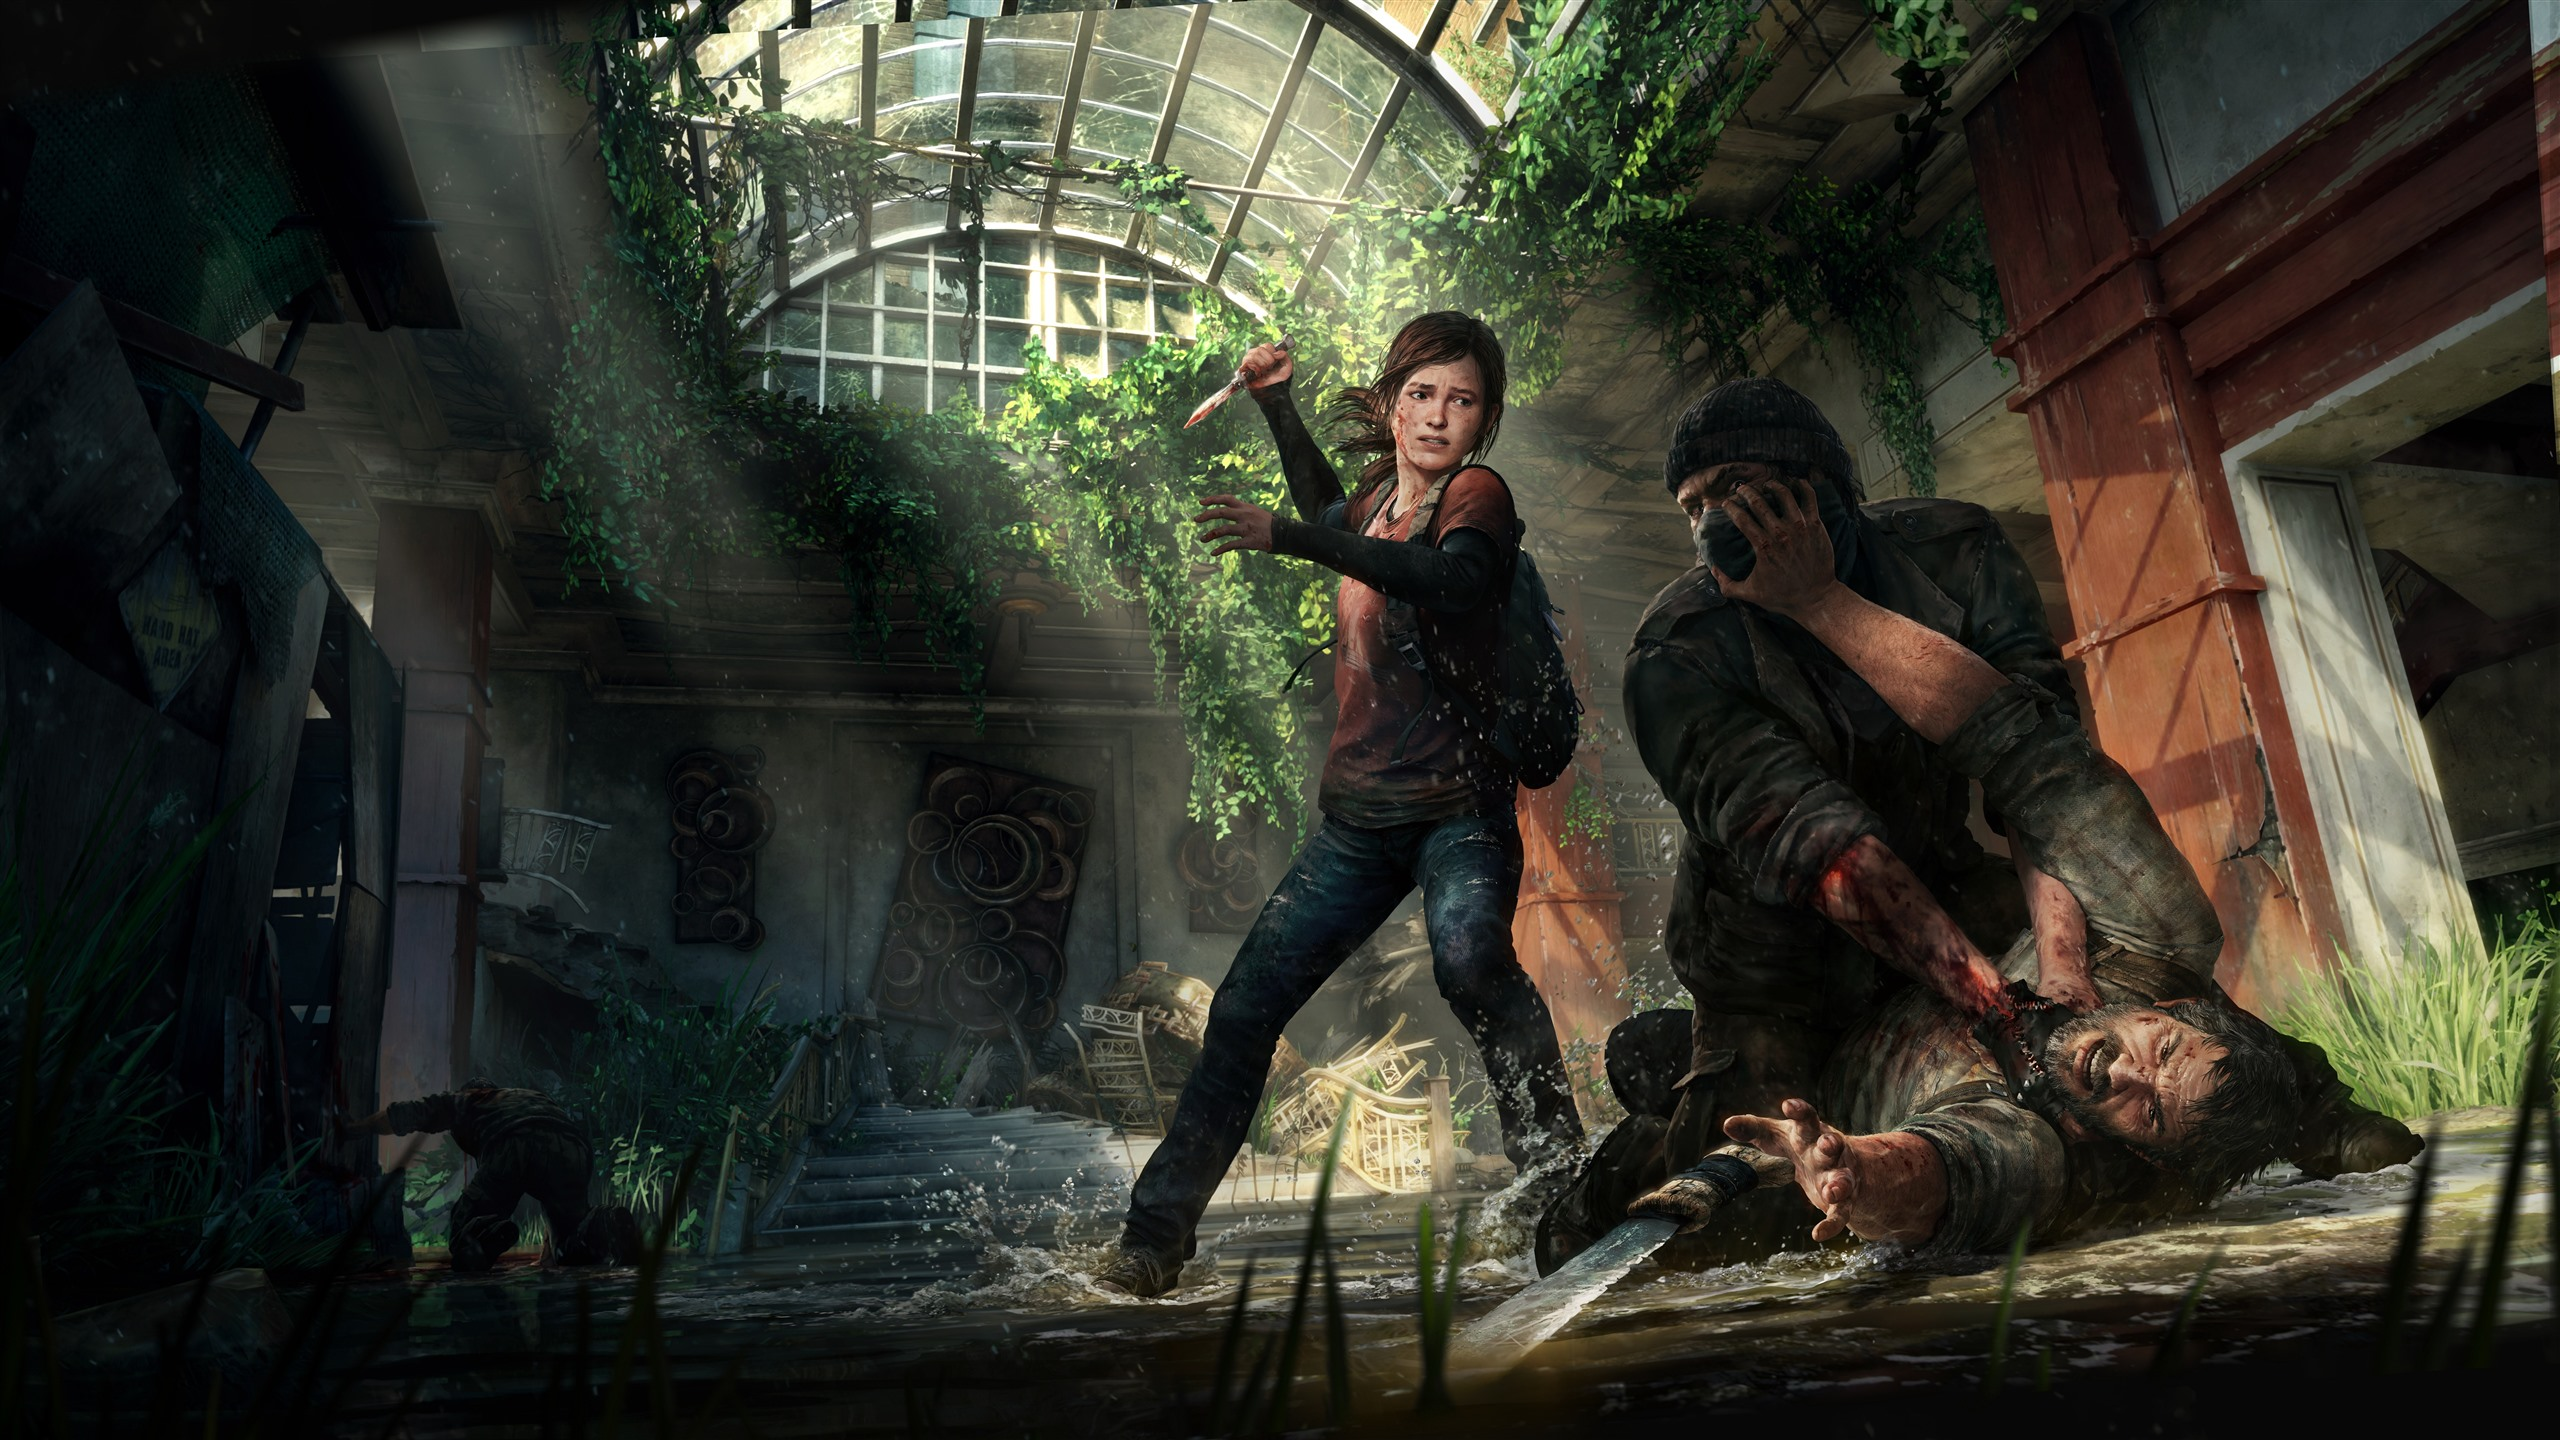 Wallpaper The Last Of Us Ellie Game 7680x4320 Uhd 8k Picture Image